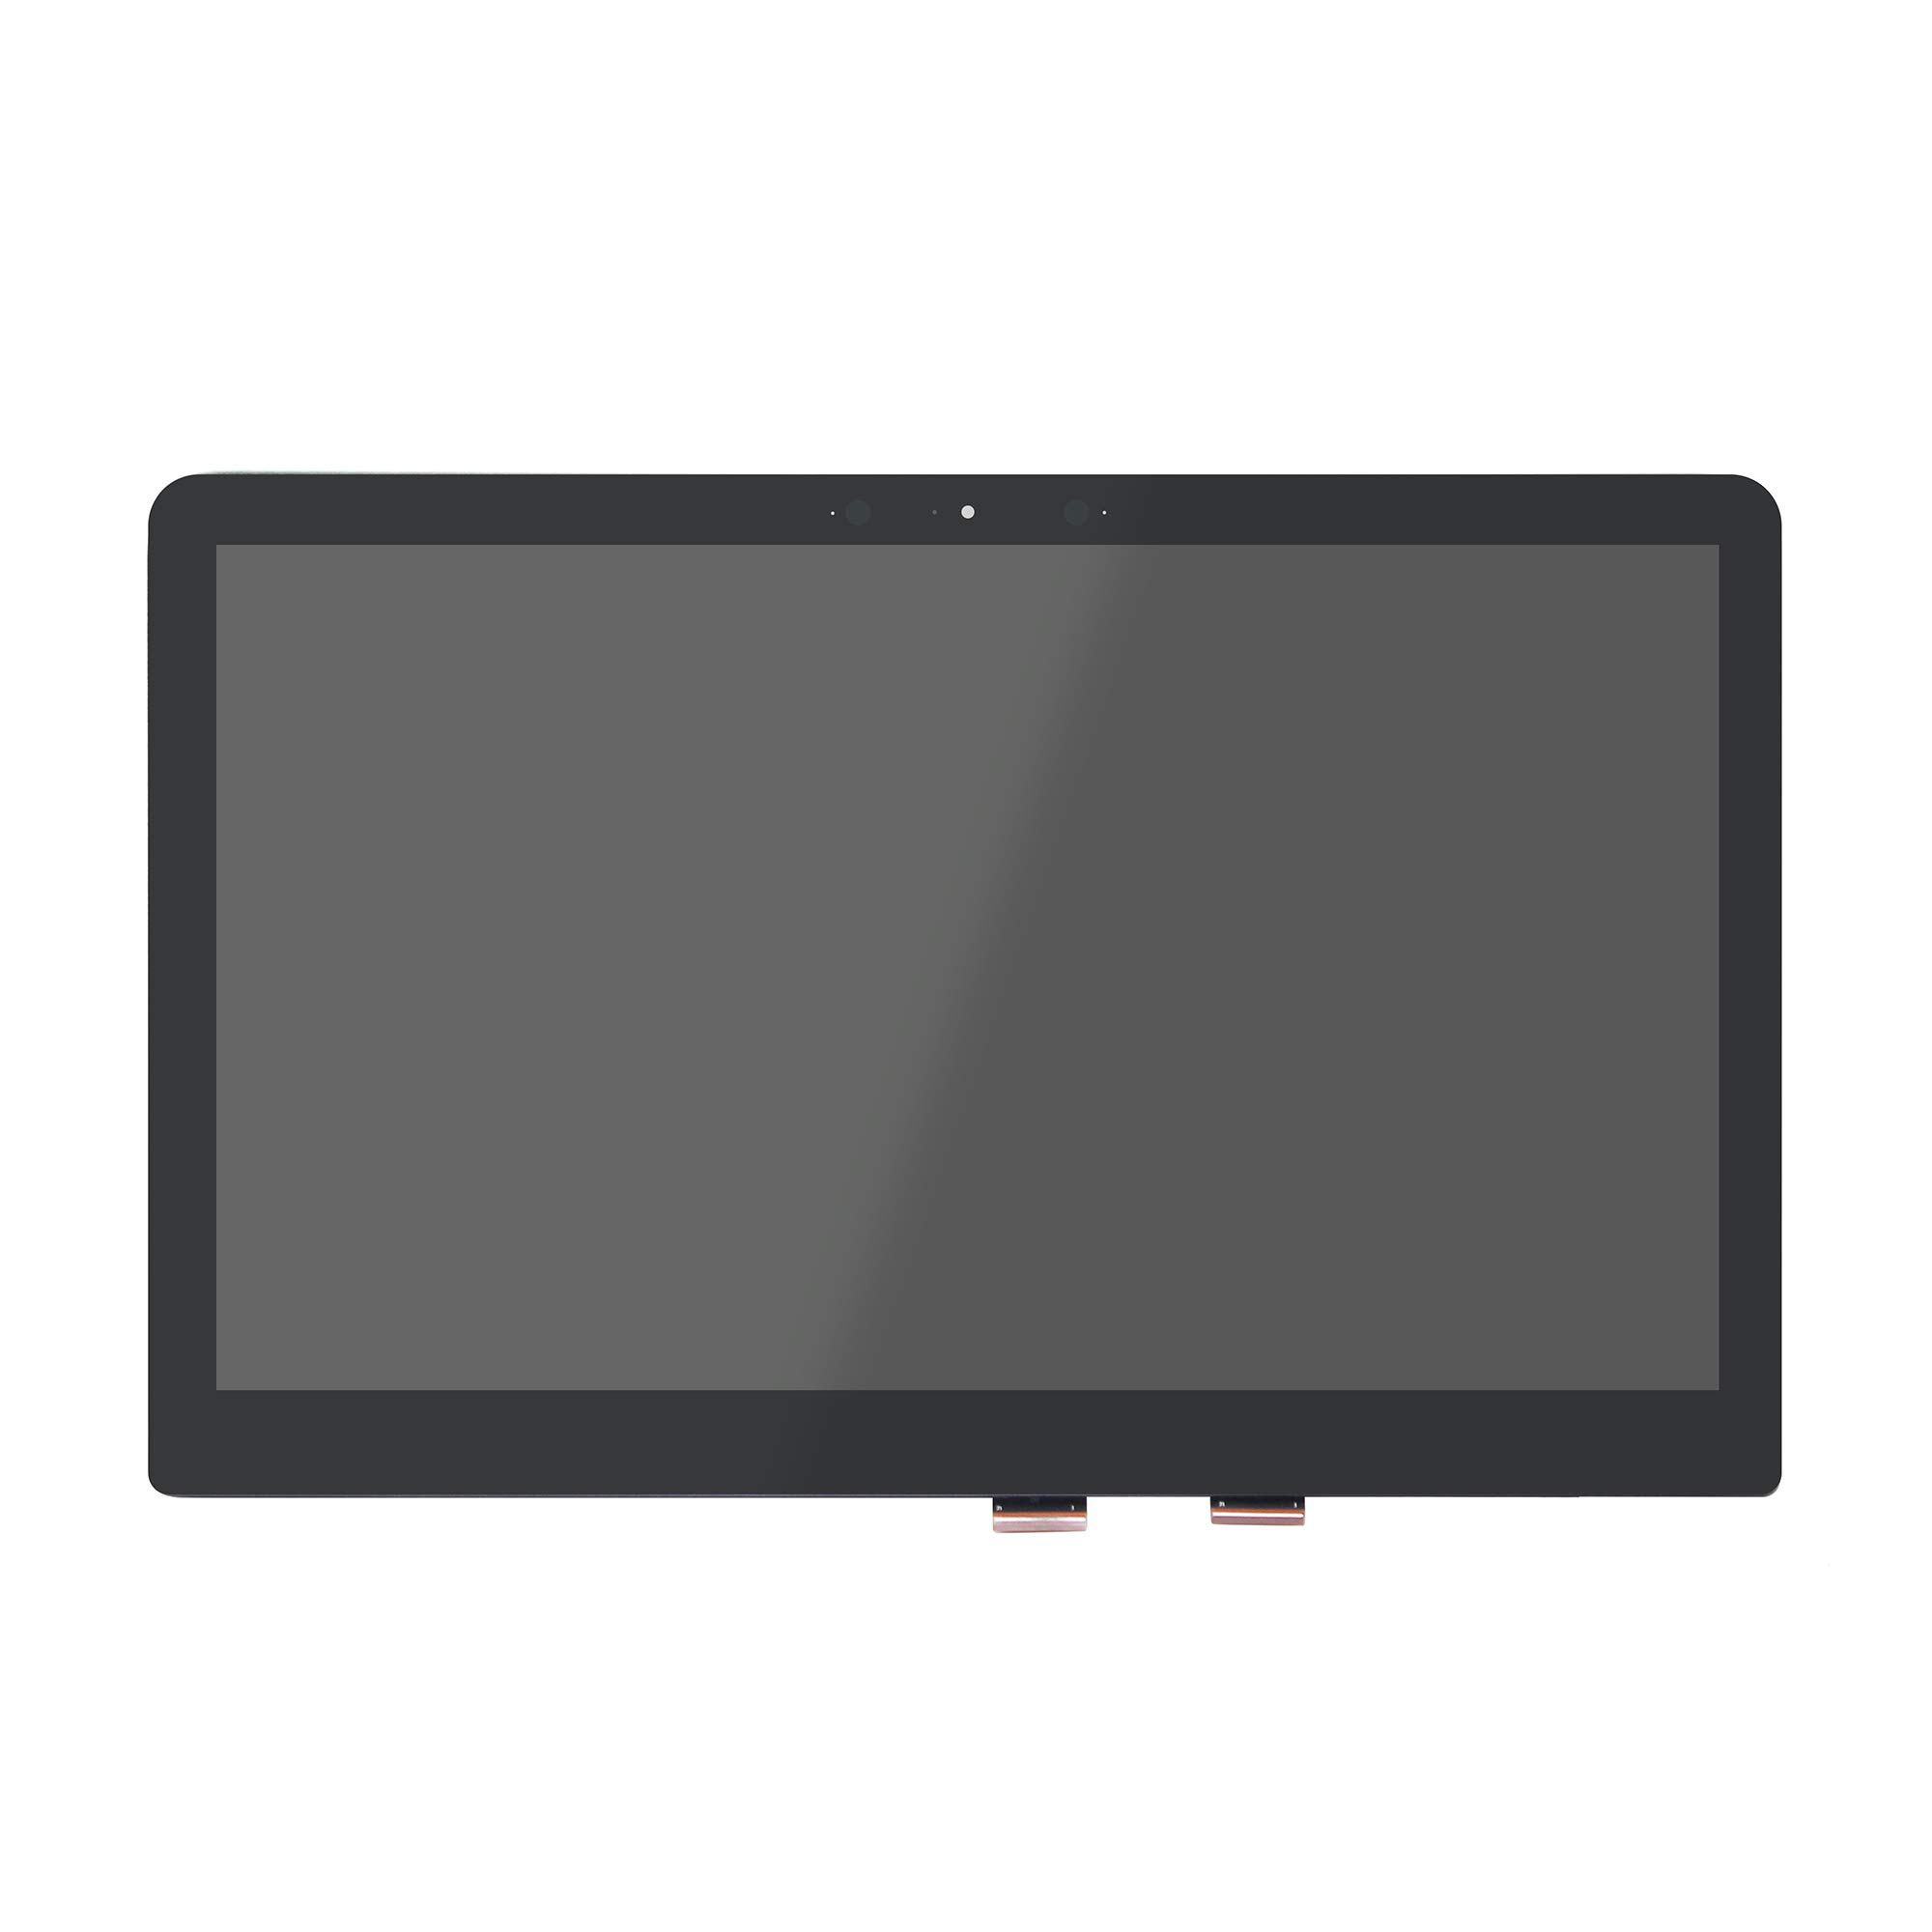 LCDOLED Compatible 15.6 inch UHD 4K IPS LCD Display Touch Screen Digitizer Assembly for HP Spectre x360 15-ap 15t-ap Series 15-ap000 15t-ap000 15-ap012dx 15-ap052nr 15-ap062nr 15-ap018ca (No Bezel)